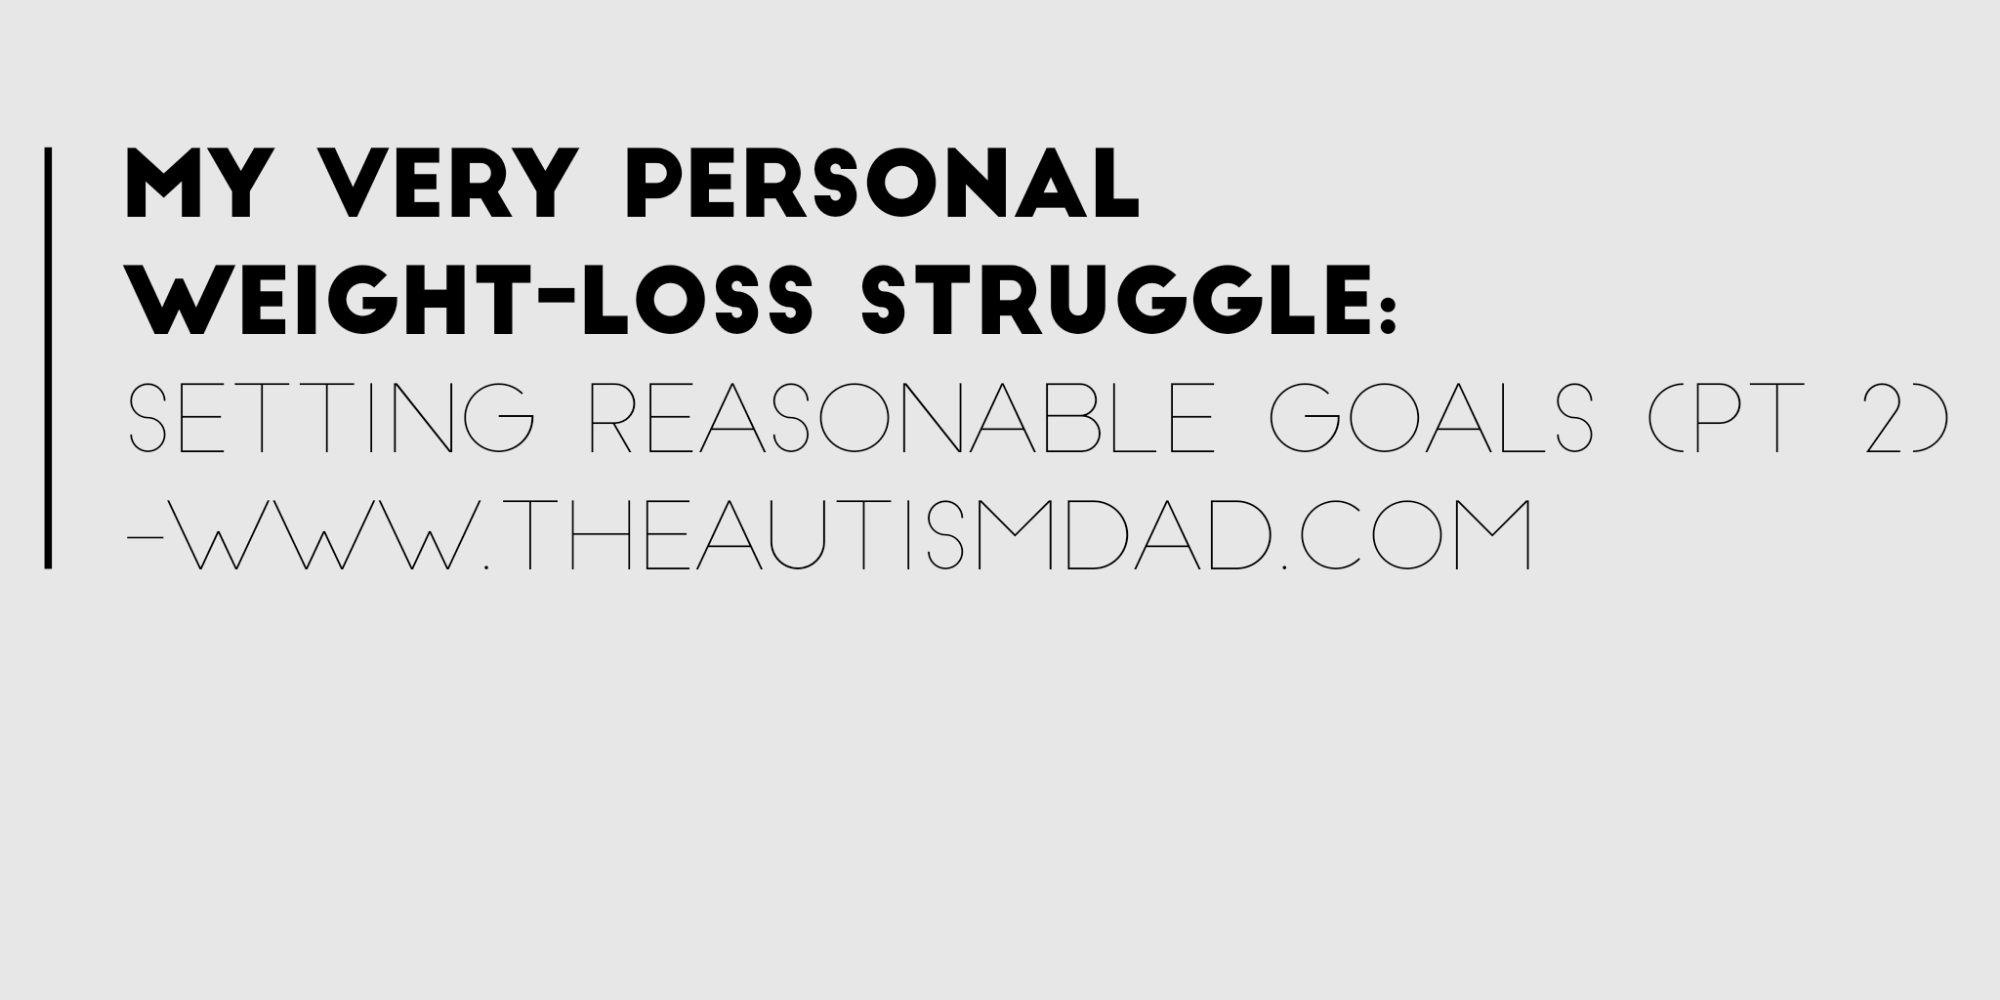 My very personal weight-loss struggle: Setting Reasonable Goals (pt 2)